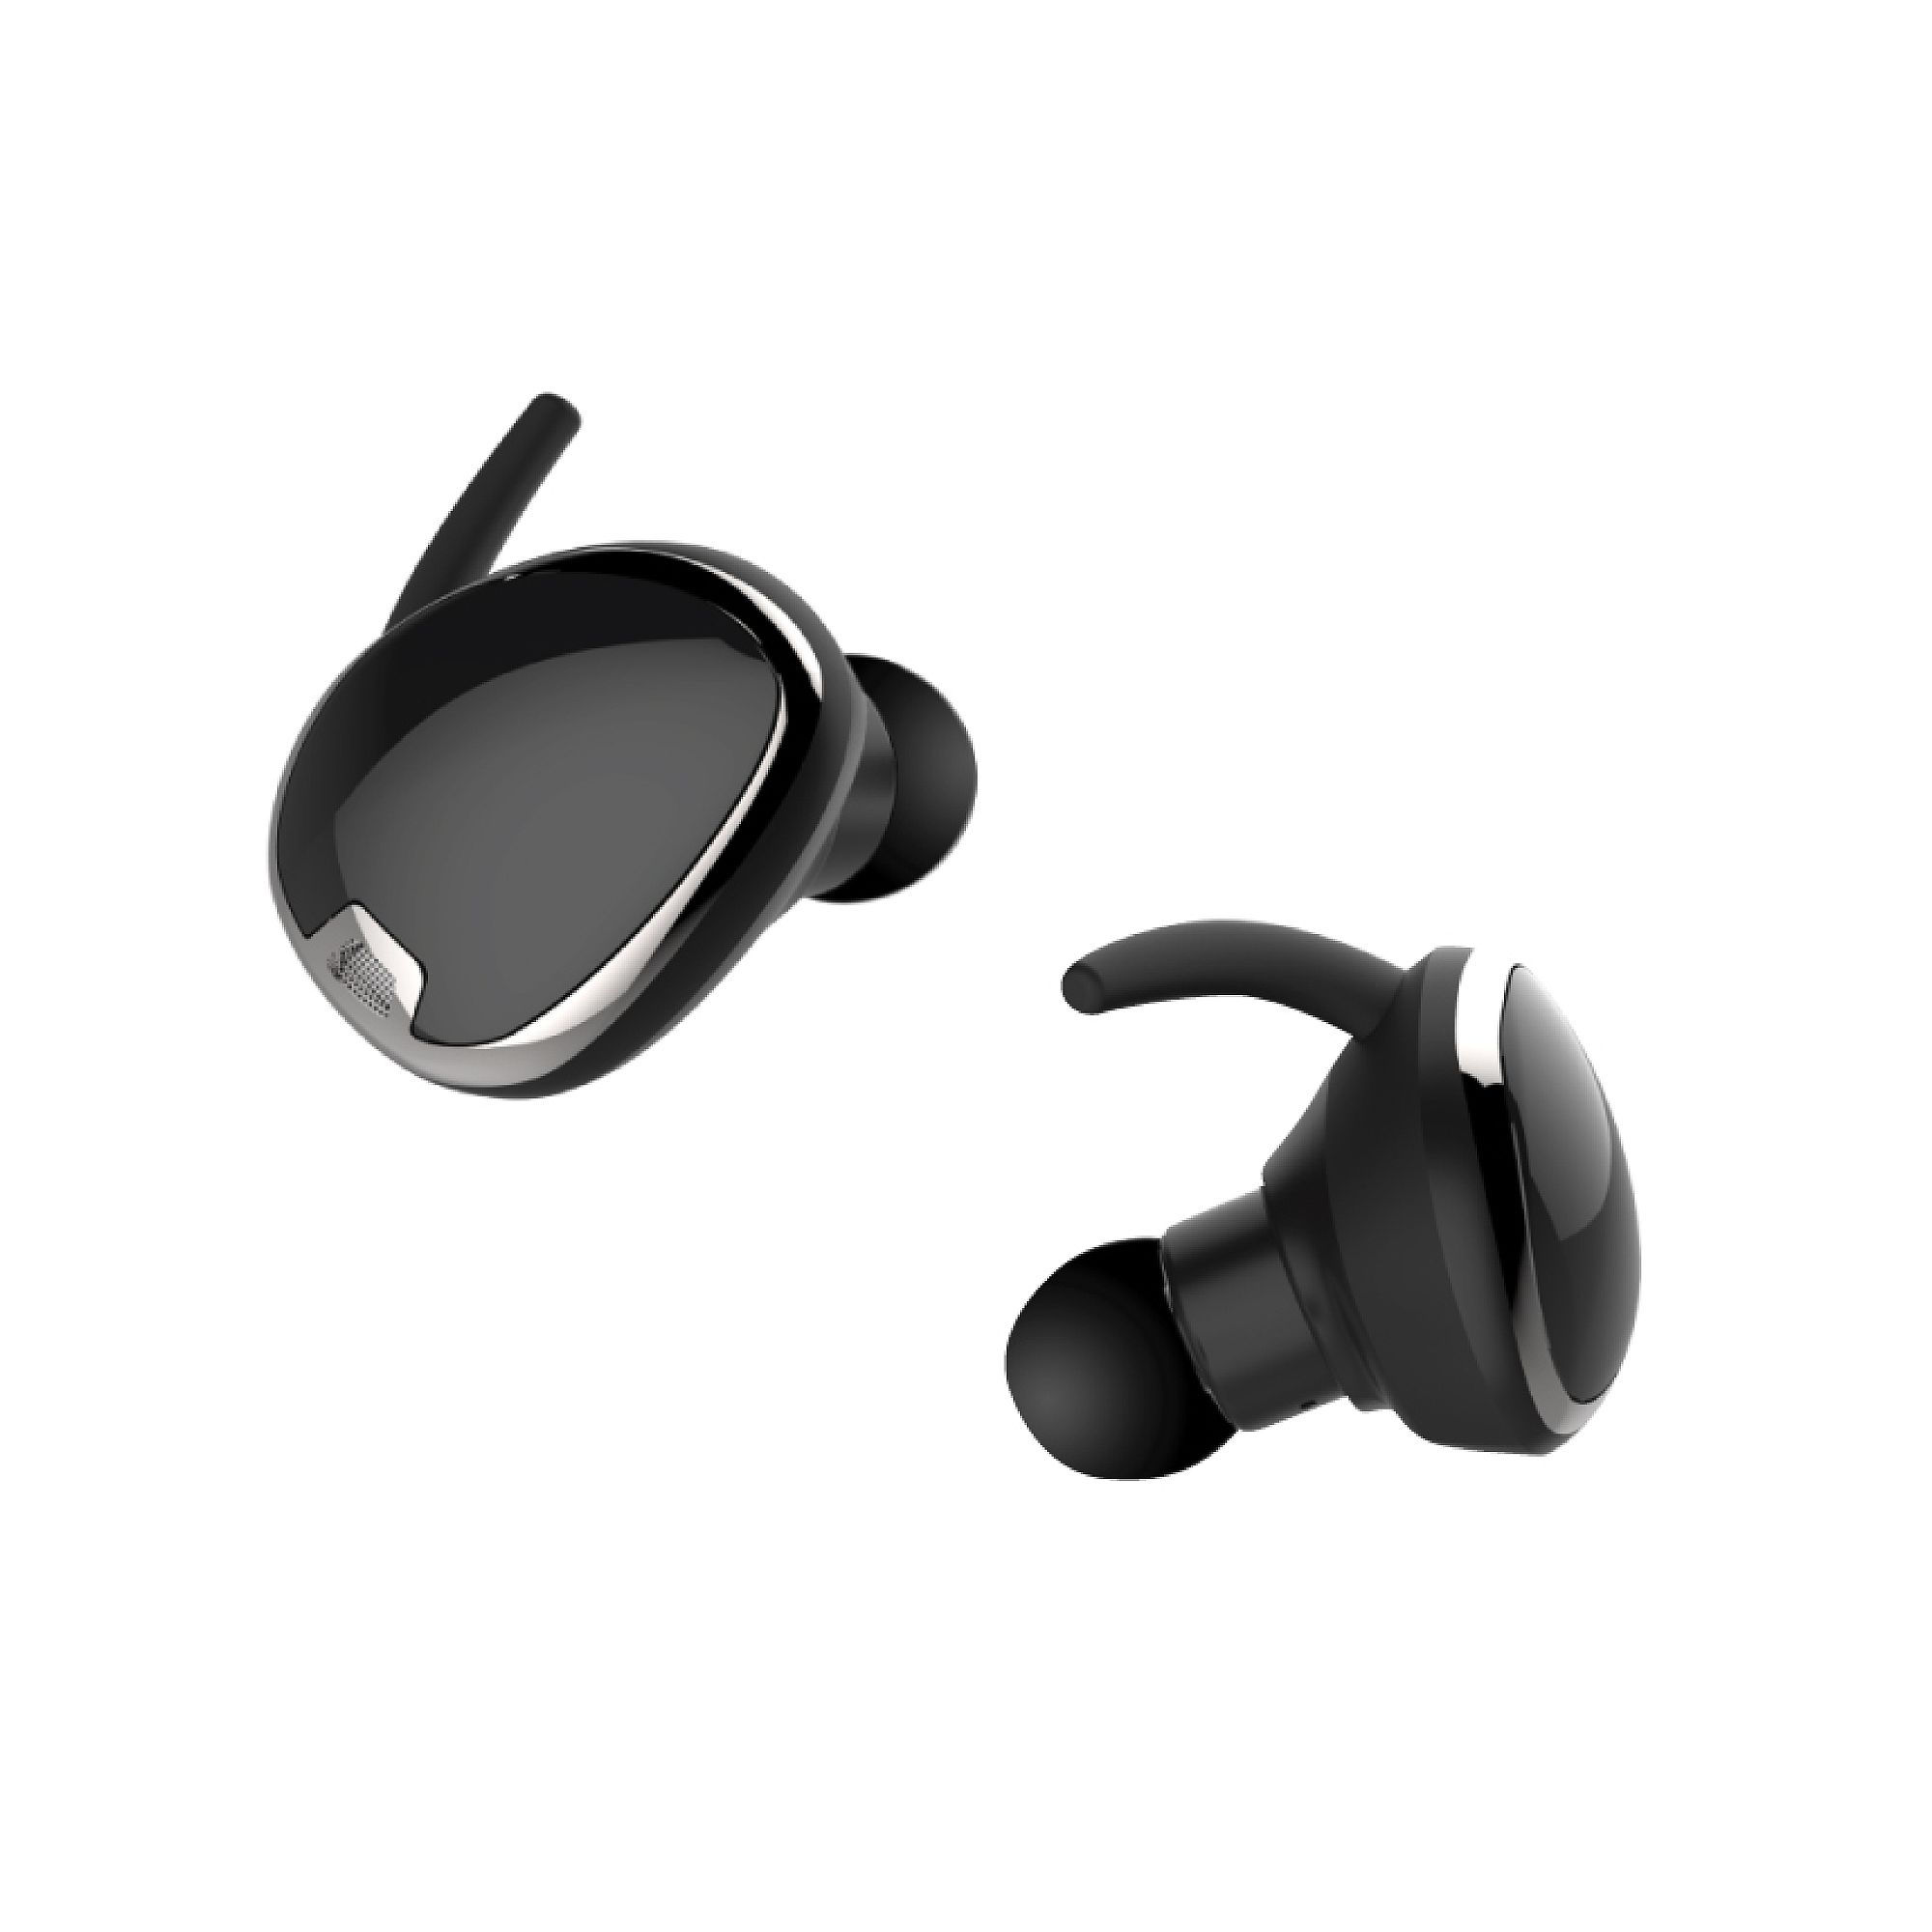 a1dd26f93a8 RevJams Studio TWS True Wireless Bluetooth Sport Stereo Earbuds- Black at  MobileCityOnline.com